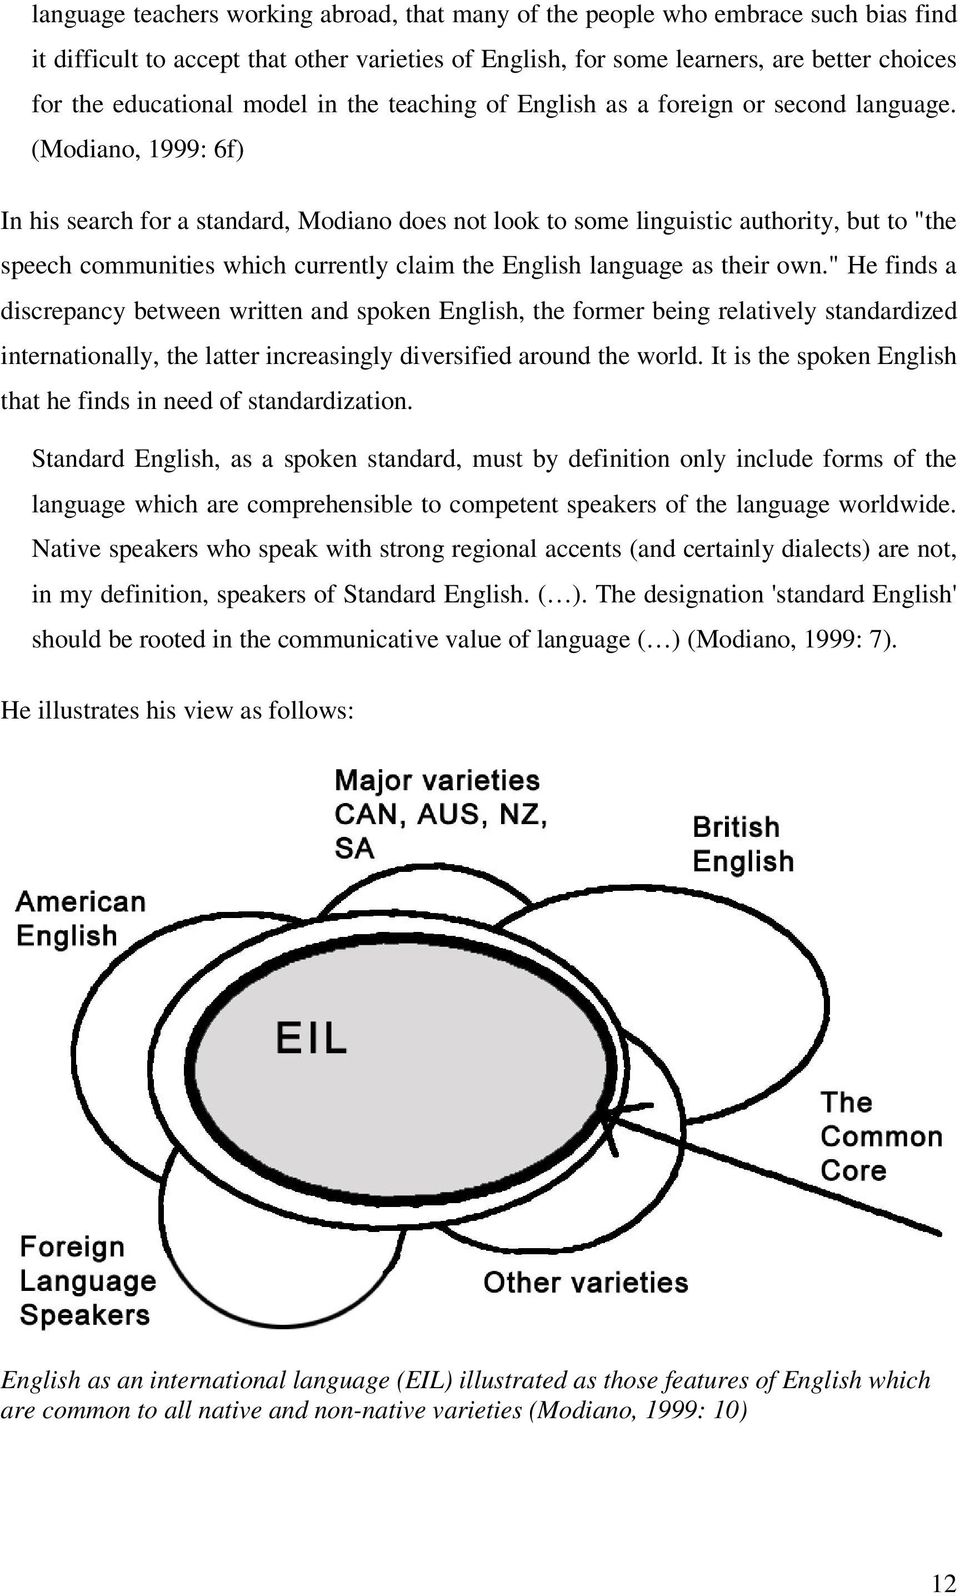 "(Modiano, 1999: 6f) In his search for a standard, Modiano does not look to some linguistic authority, but to ""the speech communities which currently claim the English language as their own."